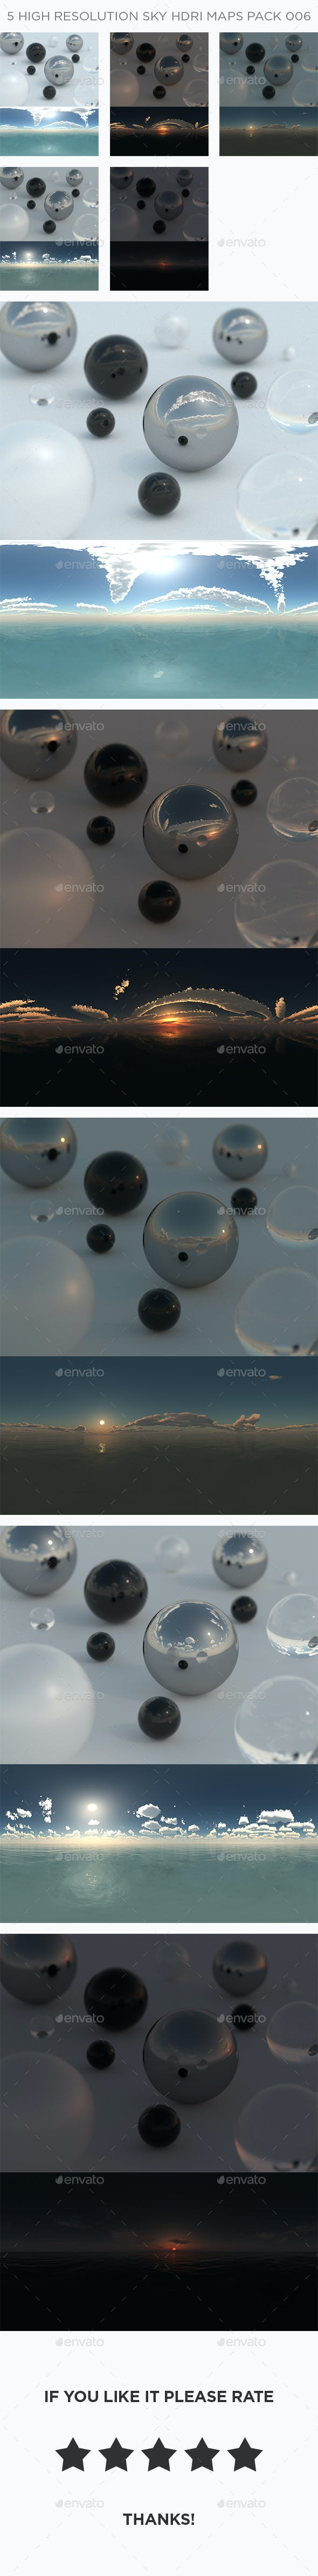 5 High Resolution Sky HDRi Maps Pack 006 - 3DOcean Item for Sale